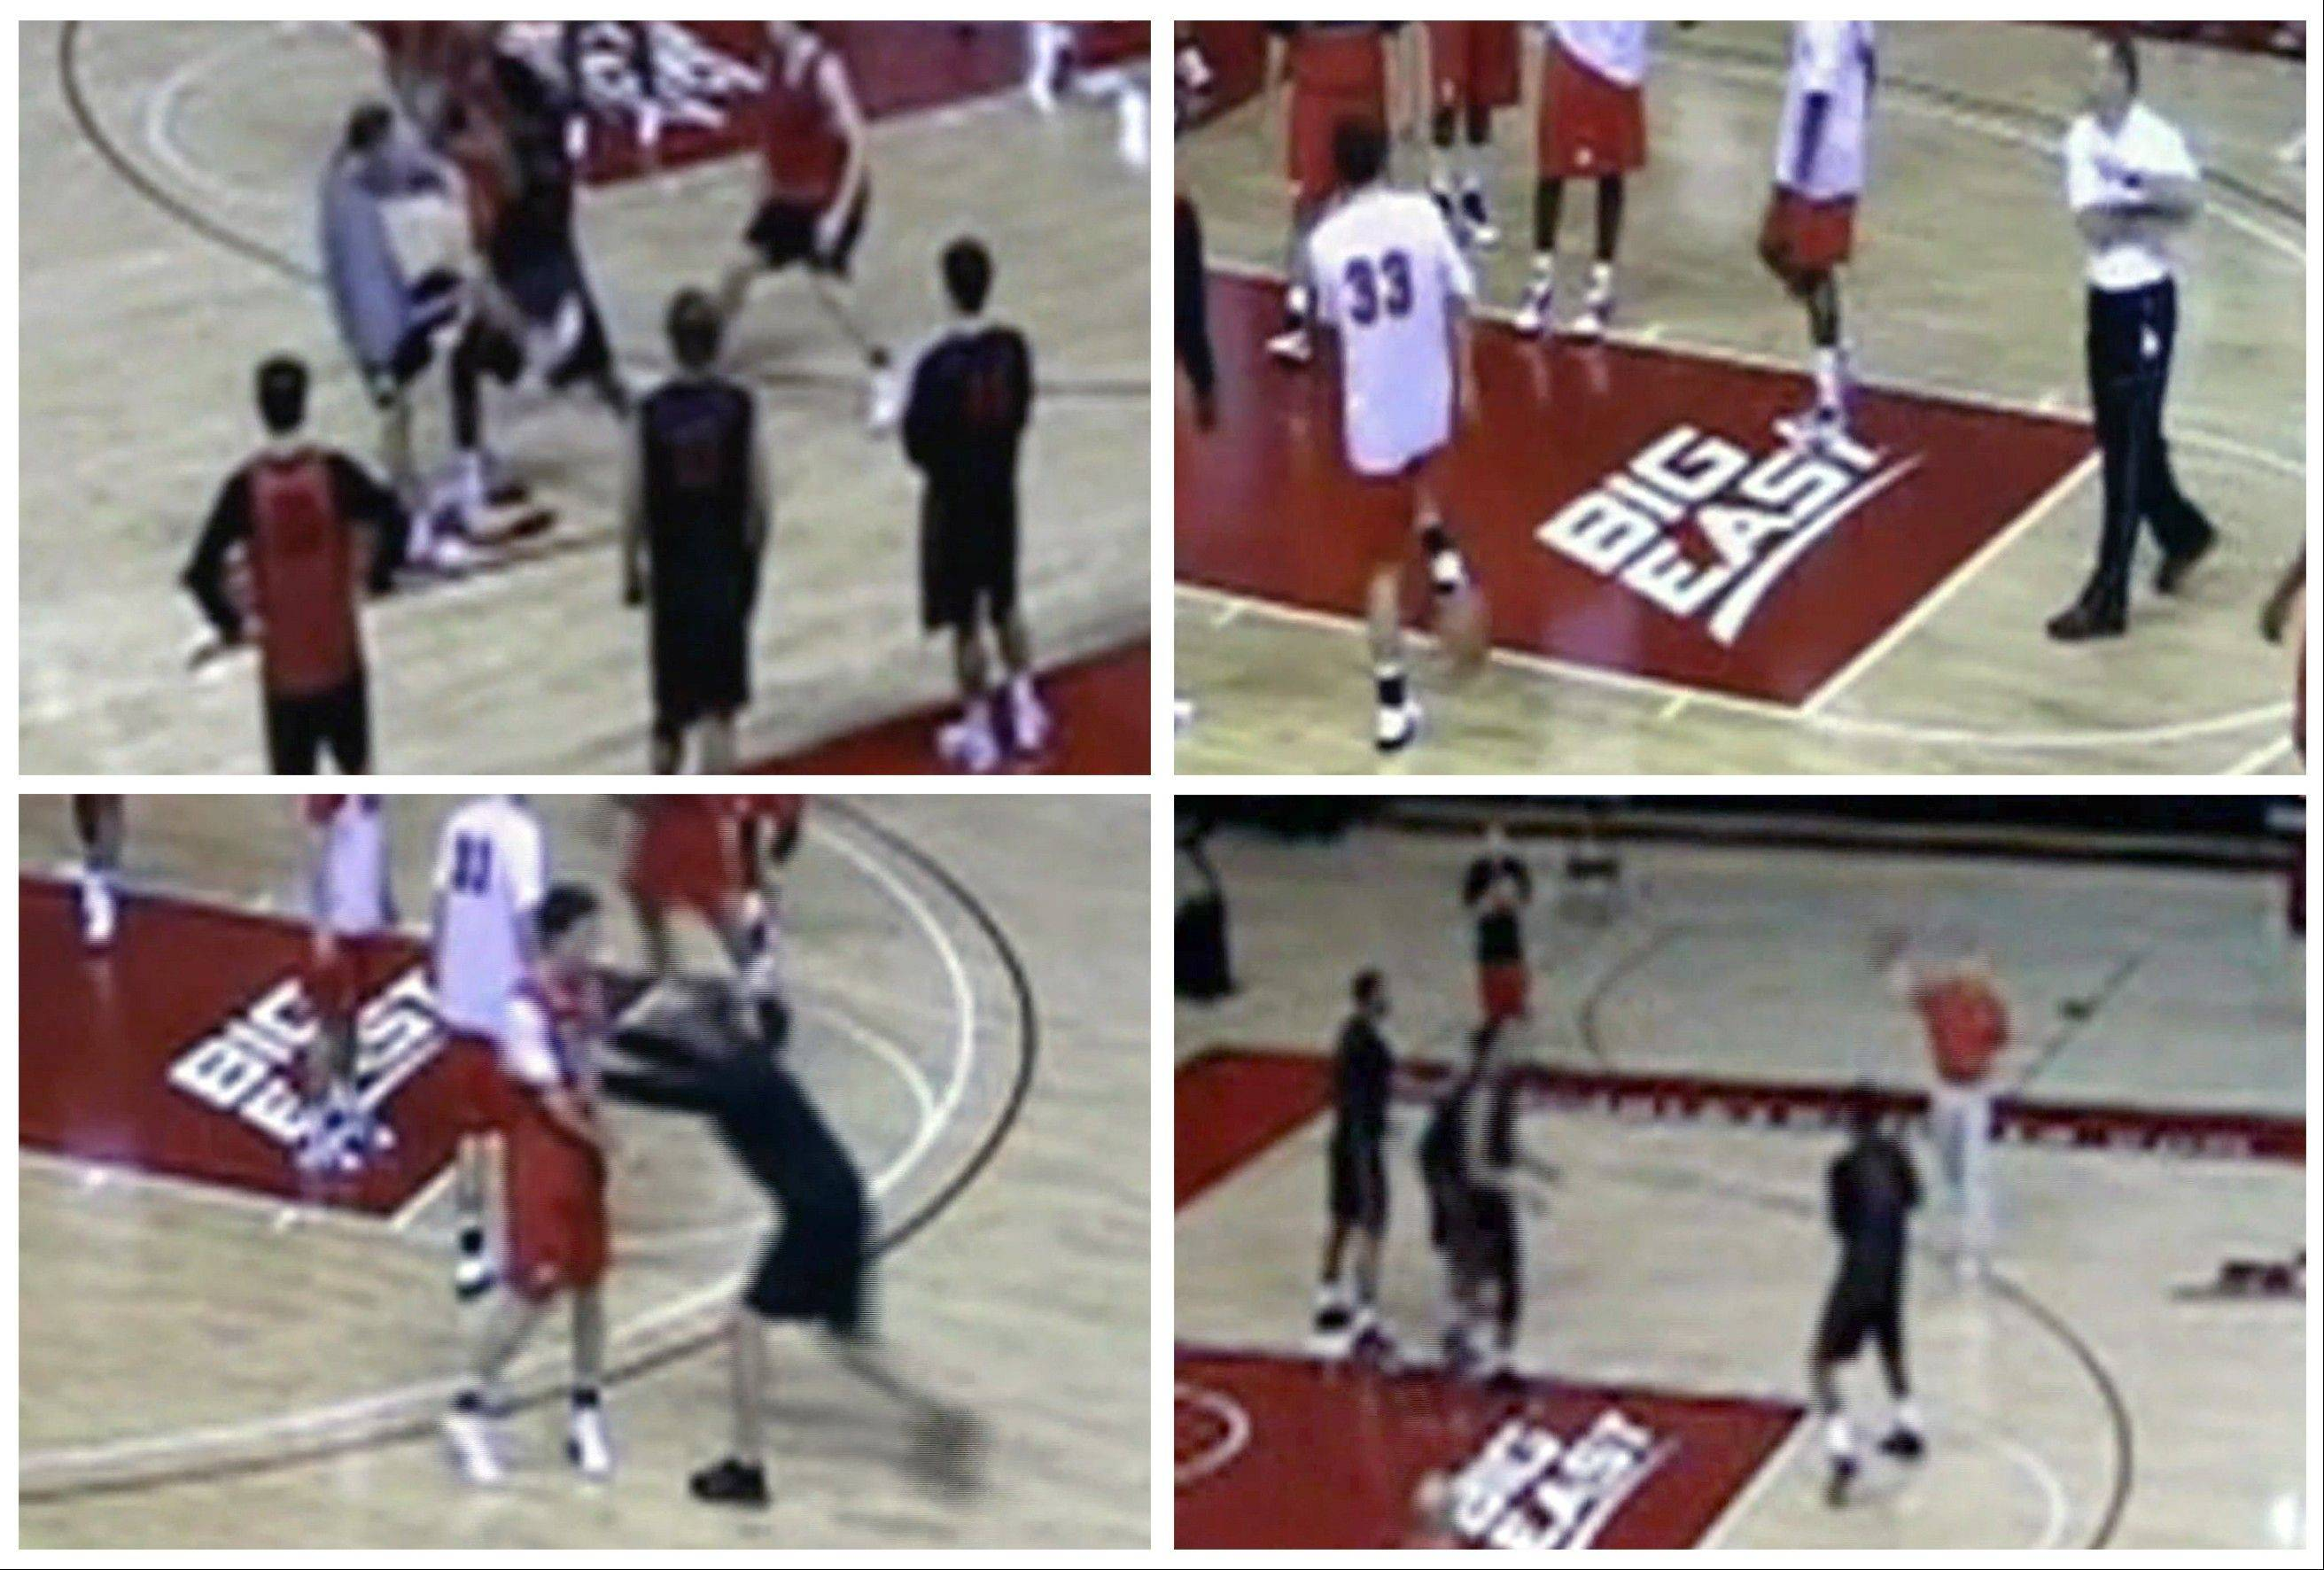 In this four-image combo taken from an ESPN video, Rutgers men's basketball coach Mike Rice kicks, shoves, and throws balls at his players during NCAA college basketball practices in Piscataway, N.J. Fueled by outrage from even the governor when the video went public, Rutgers fired Rice on Wednesday, April 3, 2013, after deciding it didn't go far enough by suspending and fining him for shoving, kicking and throwing balls at players along with spewing gay slurs.